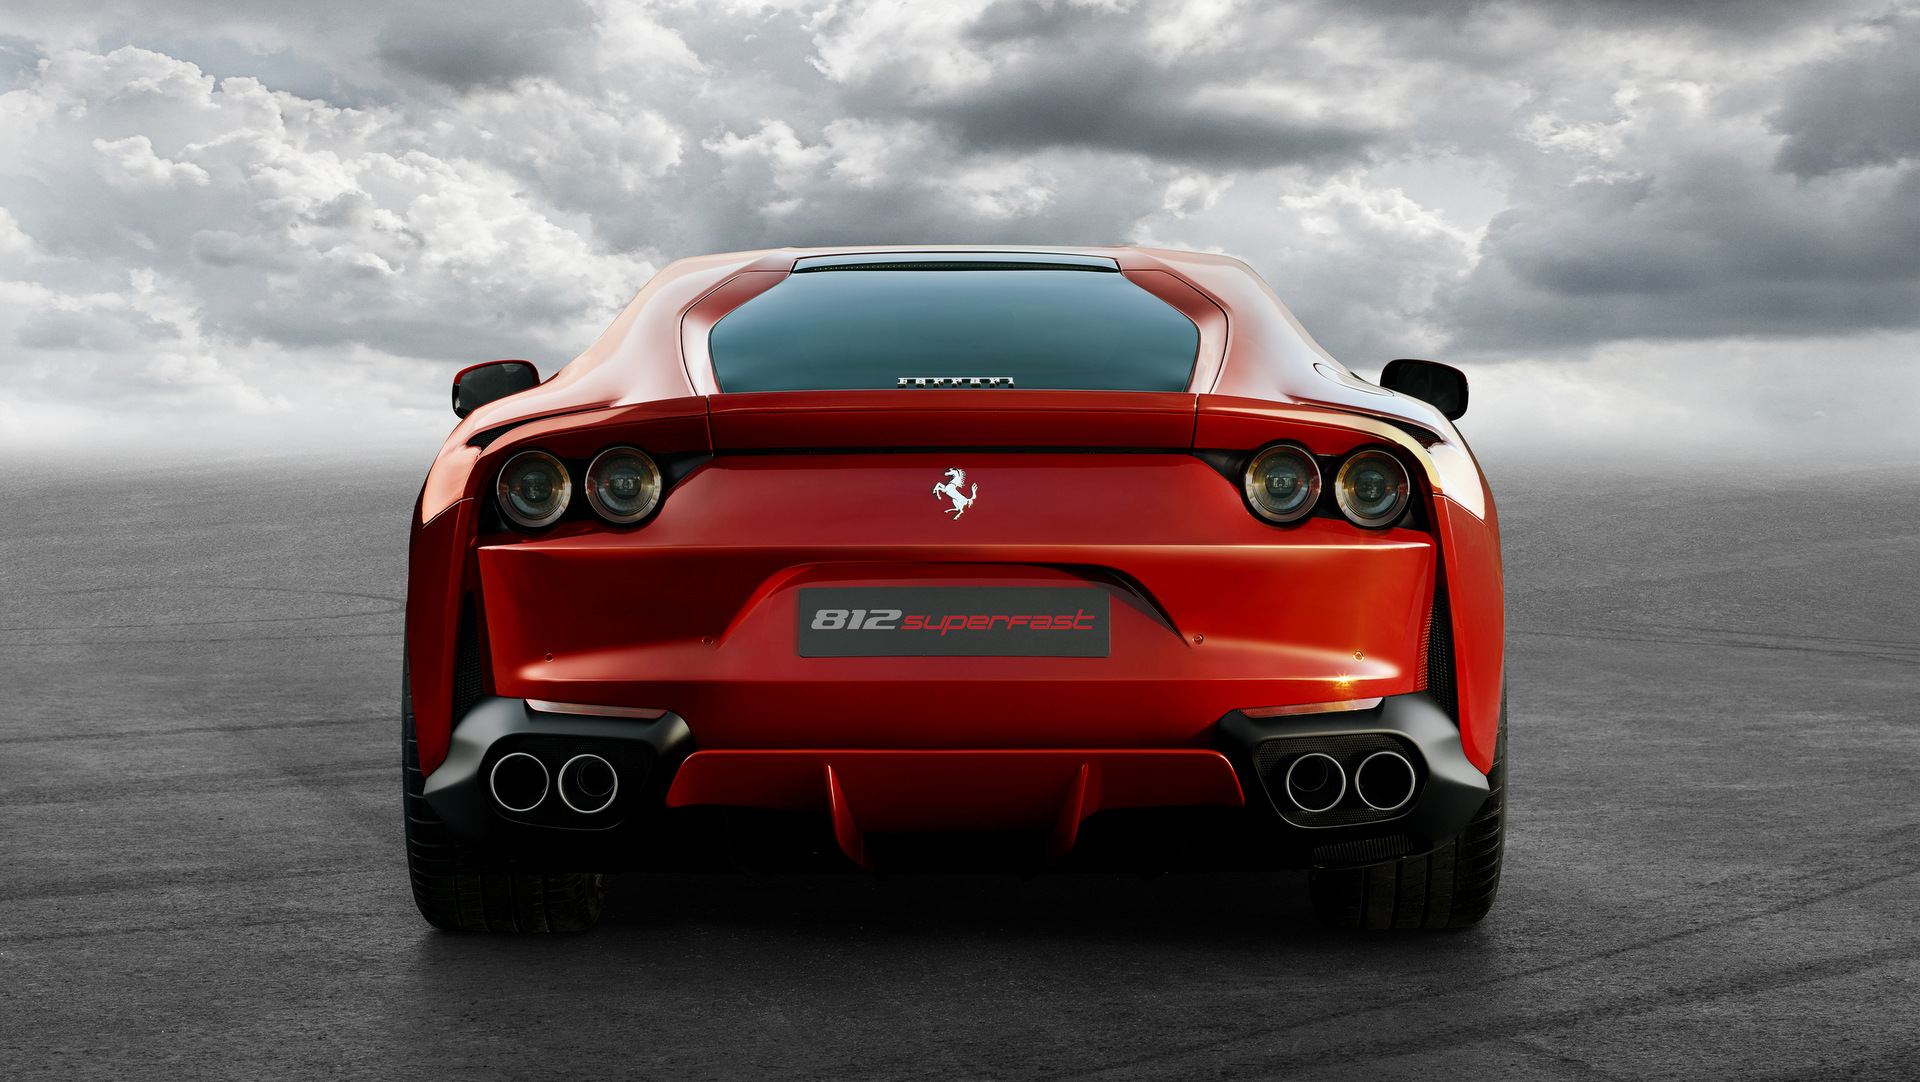 Windows 7 3d Desktop Wallpapers Free Download Ferrari 812 Superfast Car Image Wallpaper